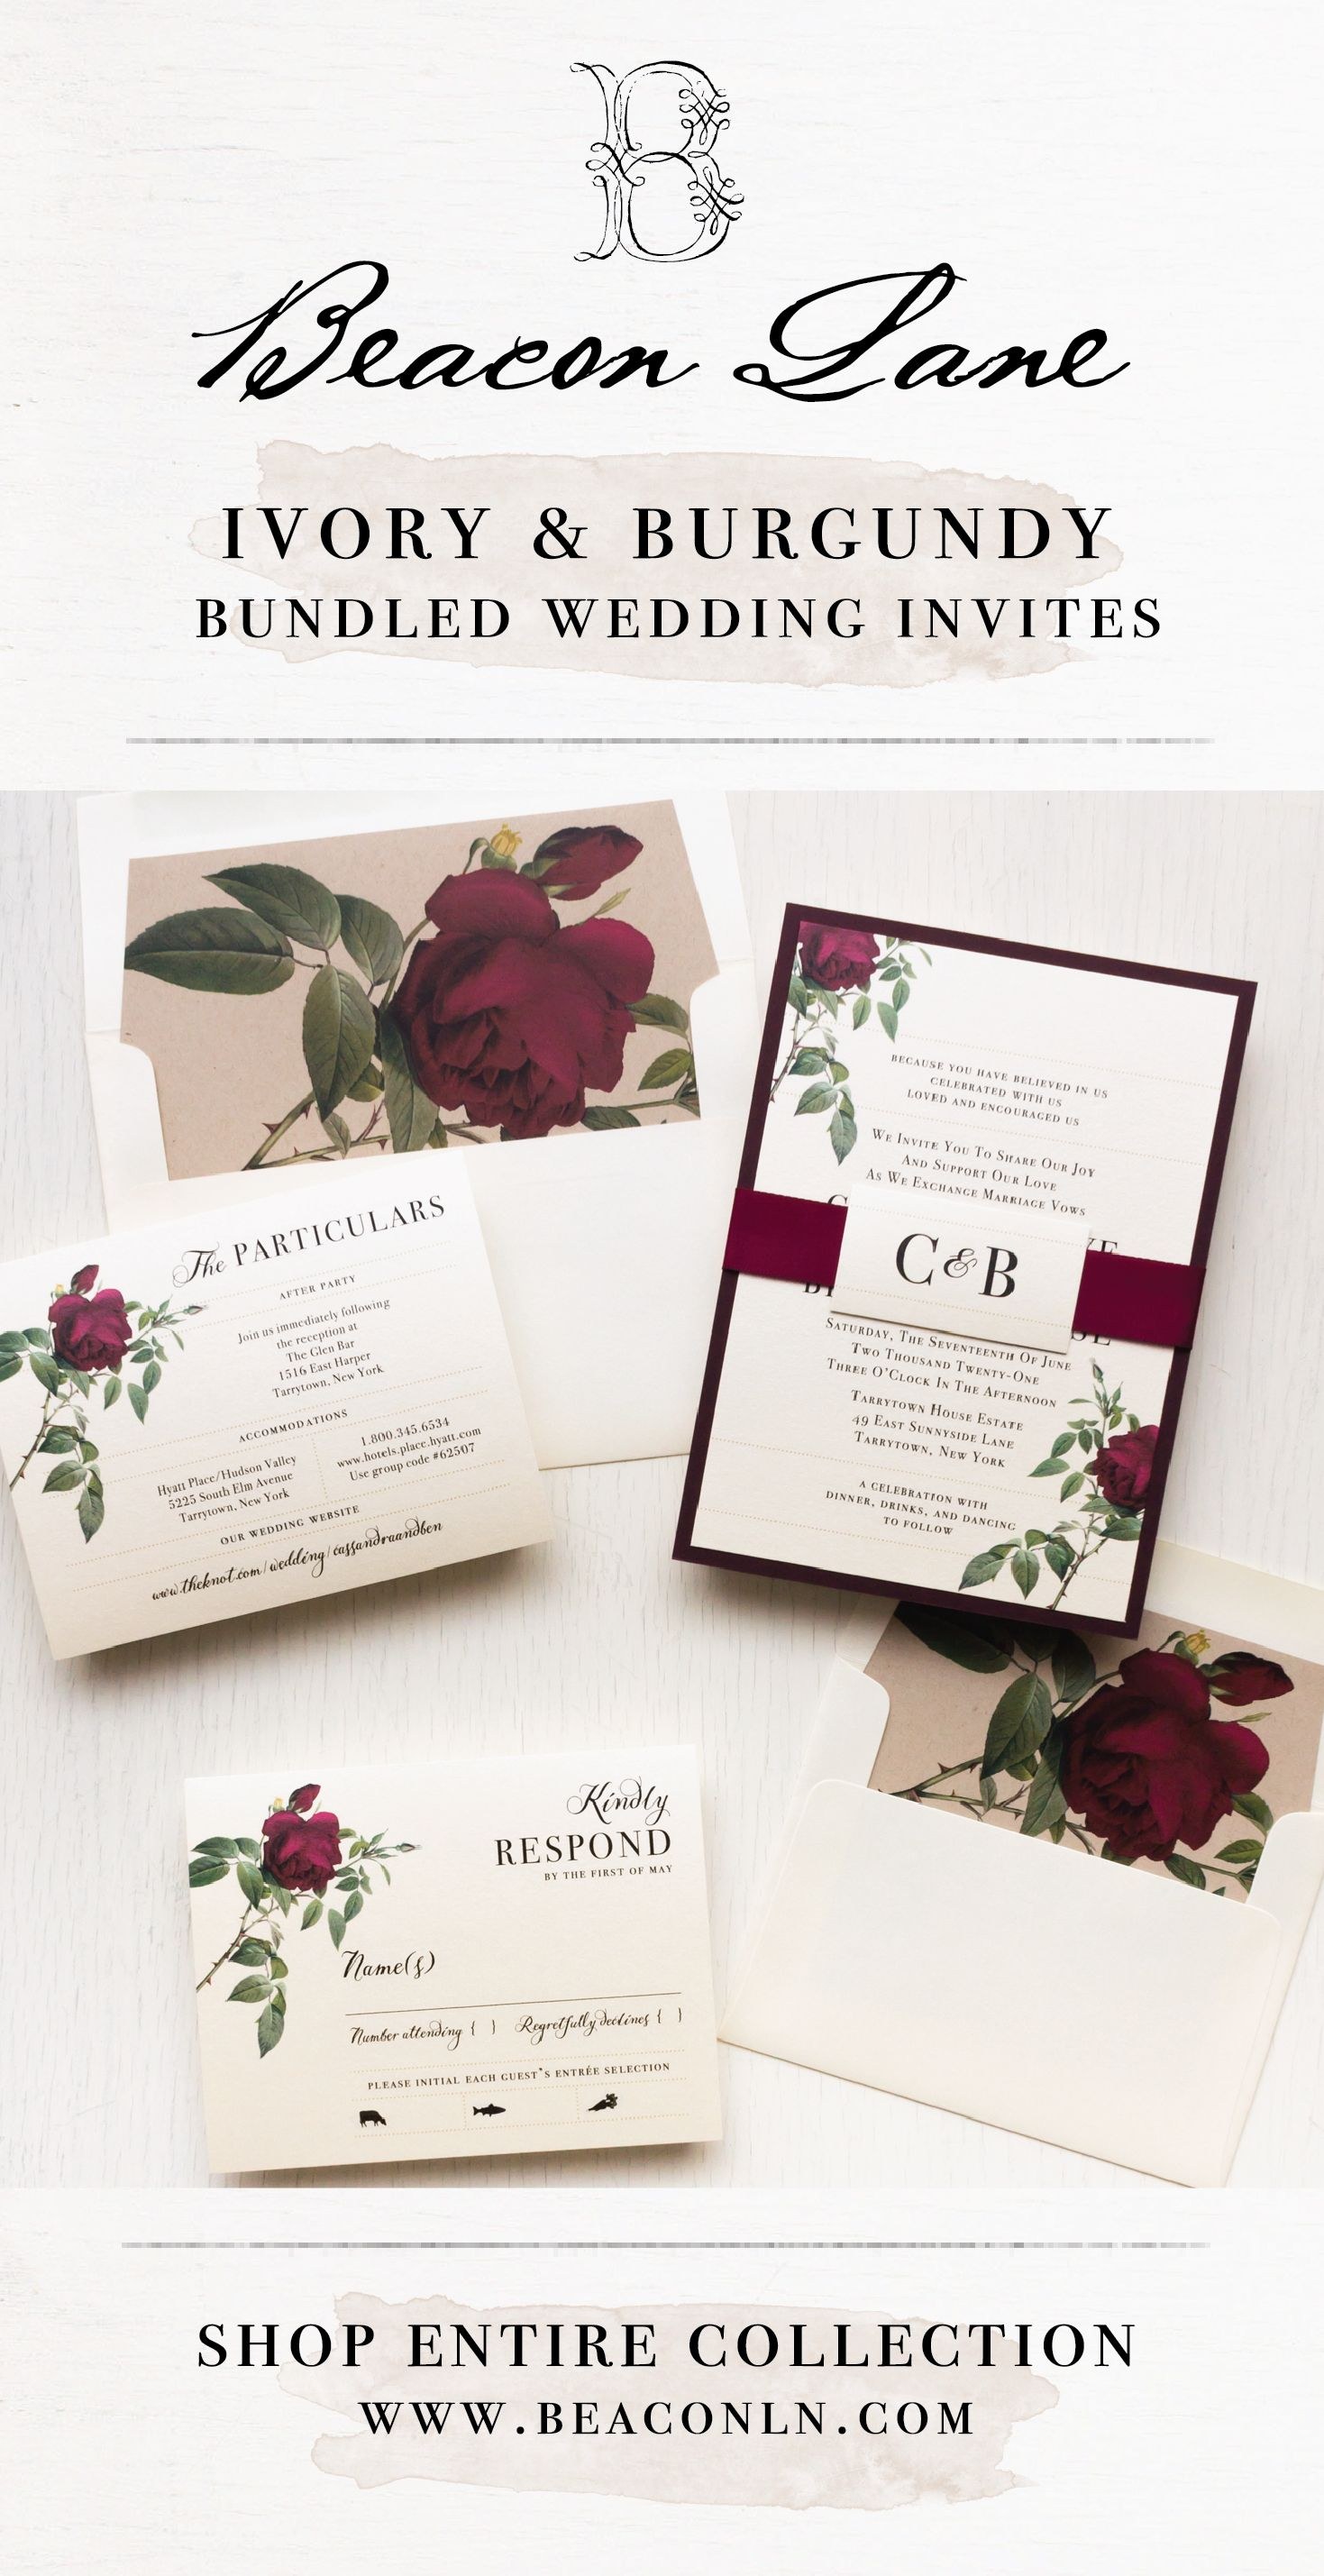 Ivory Burgundy Wedding Invitations Beacon Lane Destination Wedding Invitations Wedding Invitations Burgundy Wedding Invitations